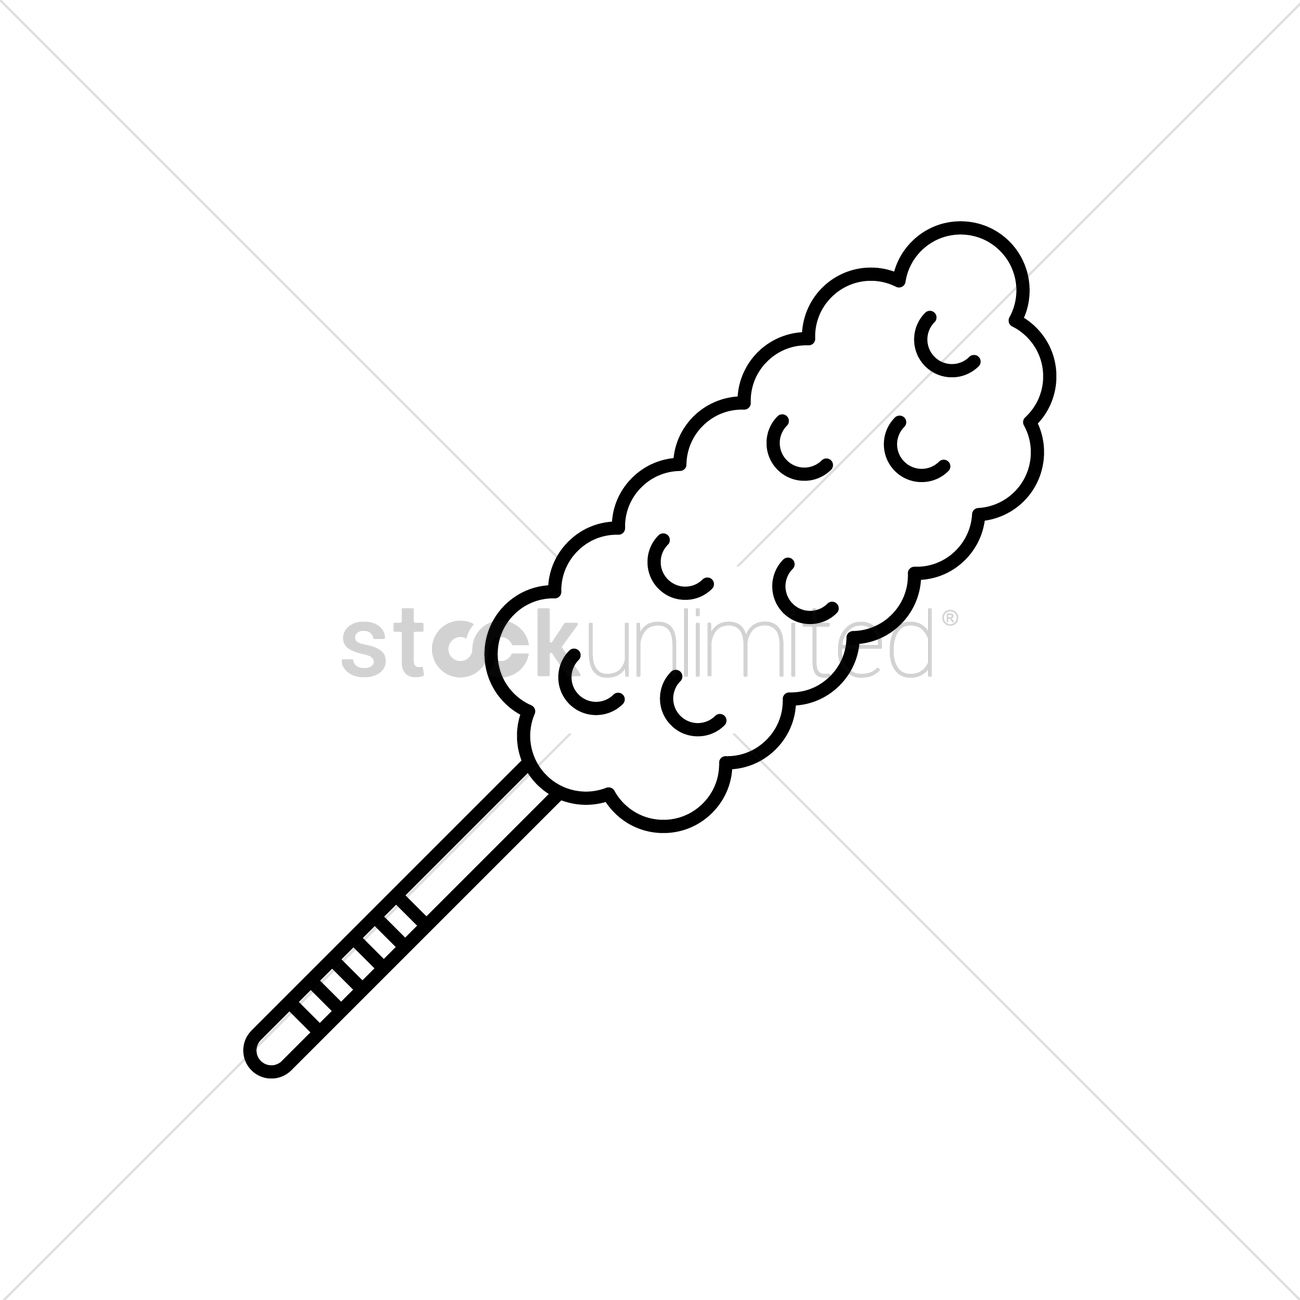 Clipart feather duster clip art download Feather duster clipart 6 » Clipart Station clip art download